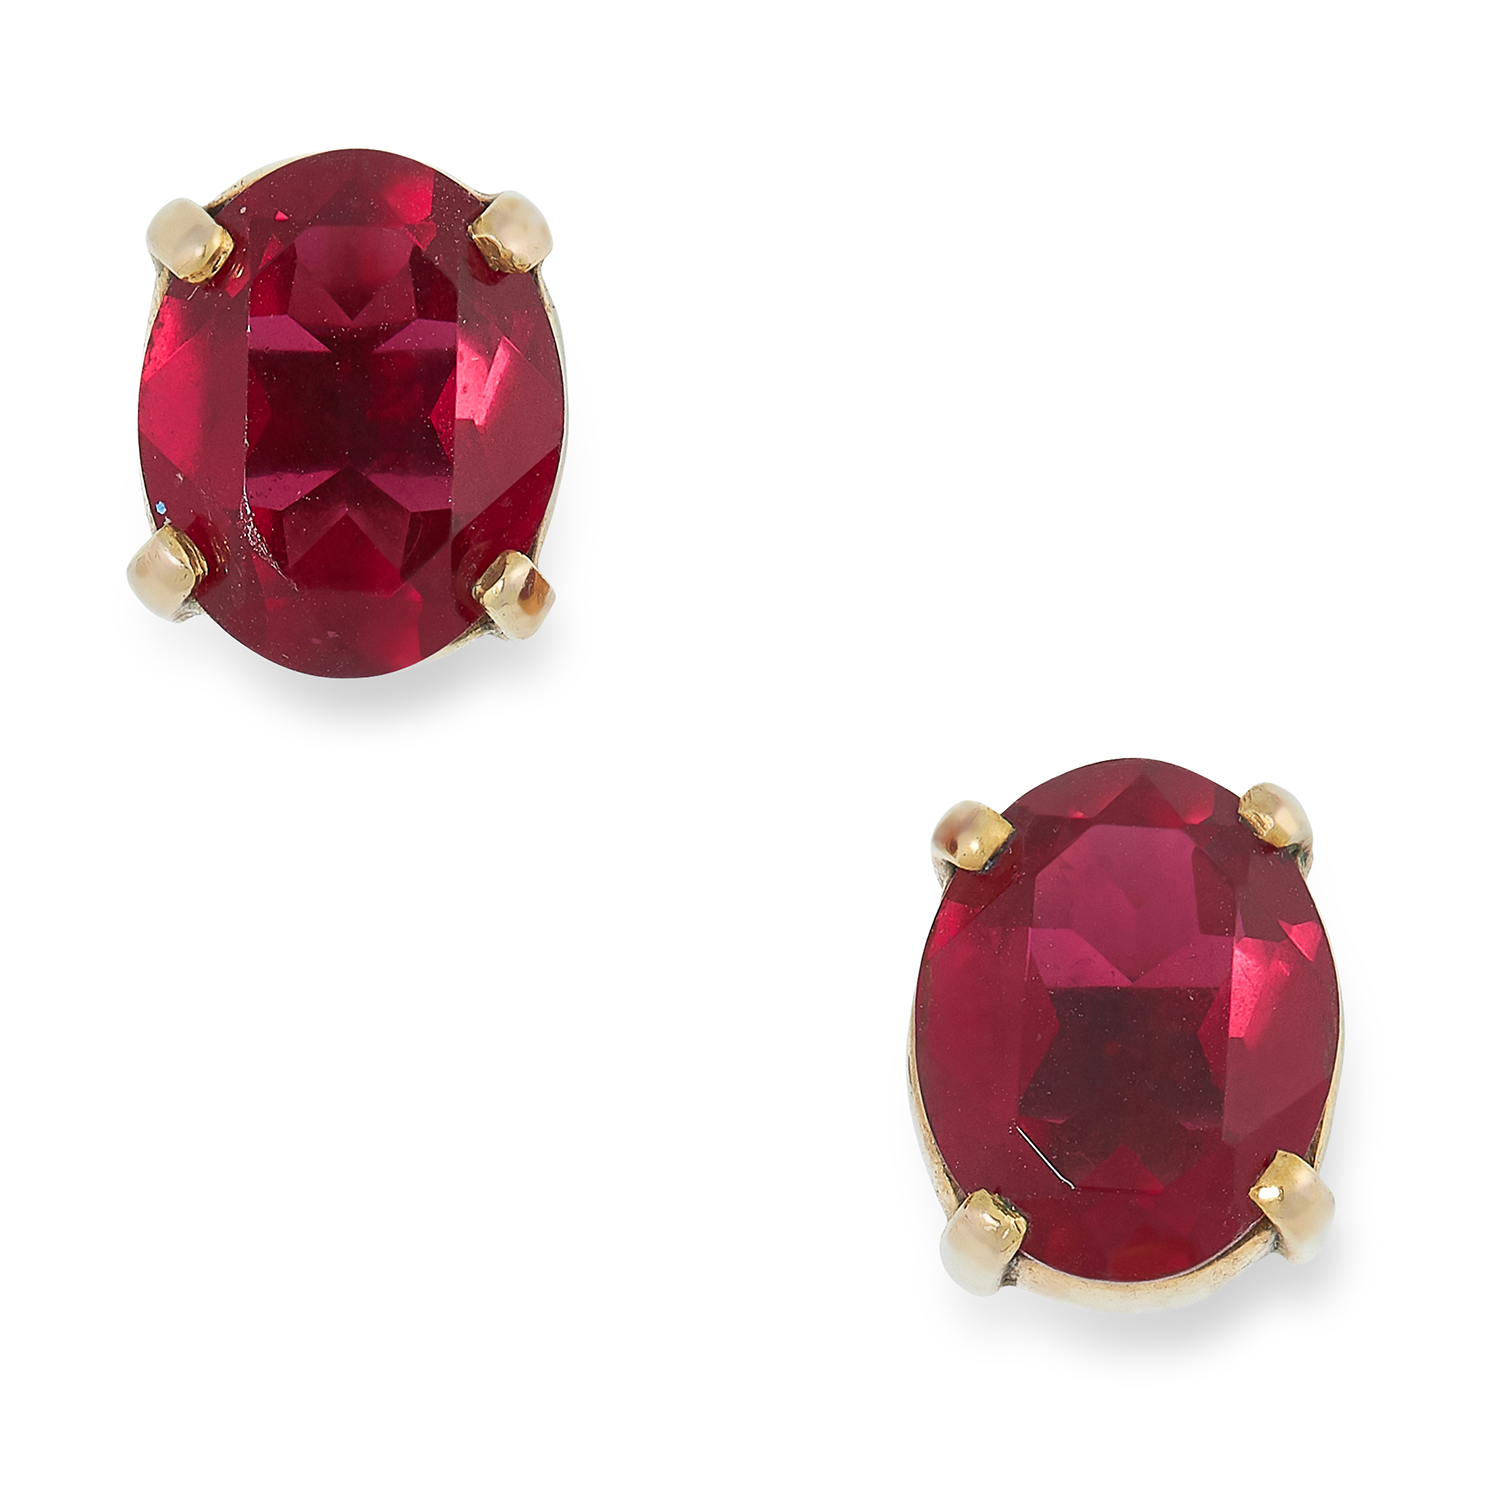 Los 27 - RED CRYSTAL STUD EARRINGS set with an oval faceted red crystal, 0.9cm, 3.5g.